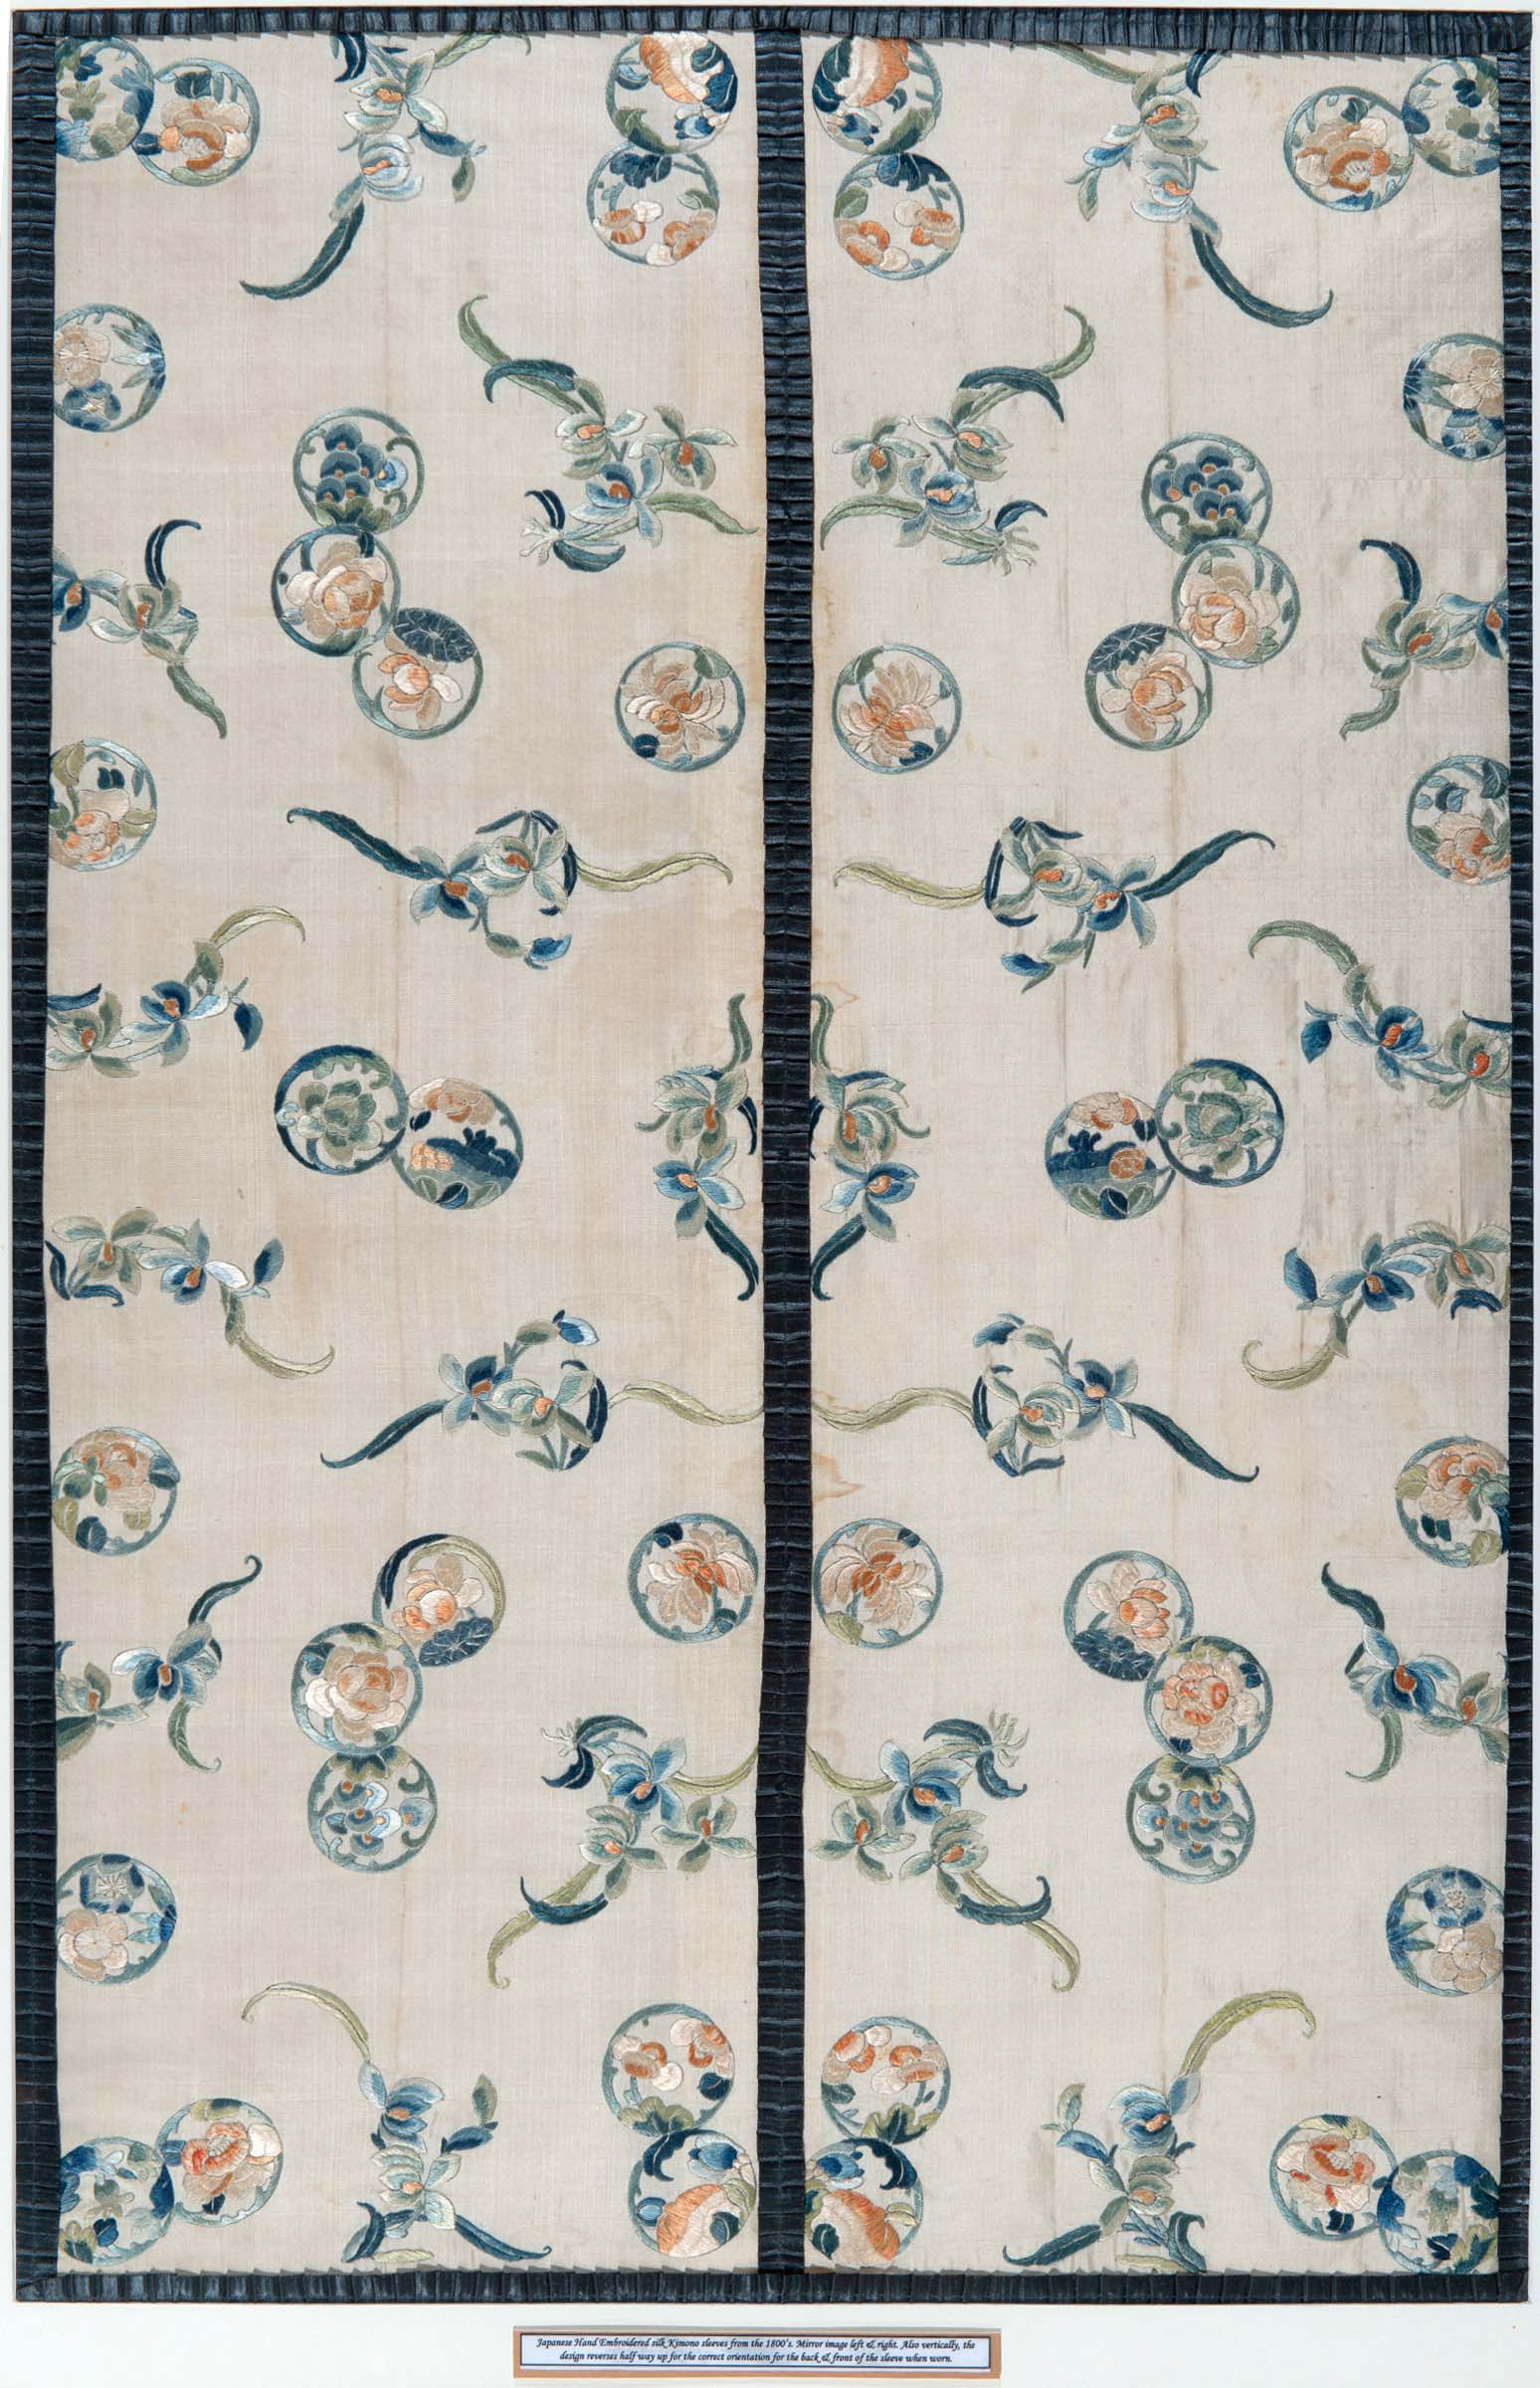 Lot 1906 - PAIR OF JAPANESE SILK EMBROIDERED SLEEVES a pair of framed silk sleeves from a Kimono, embroidered